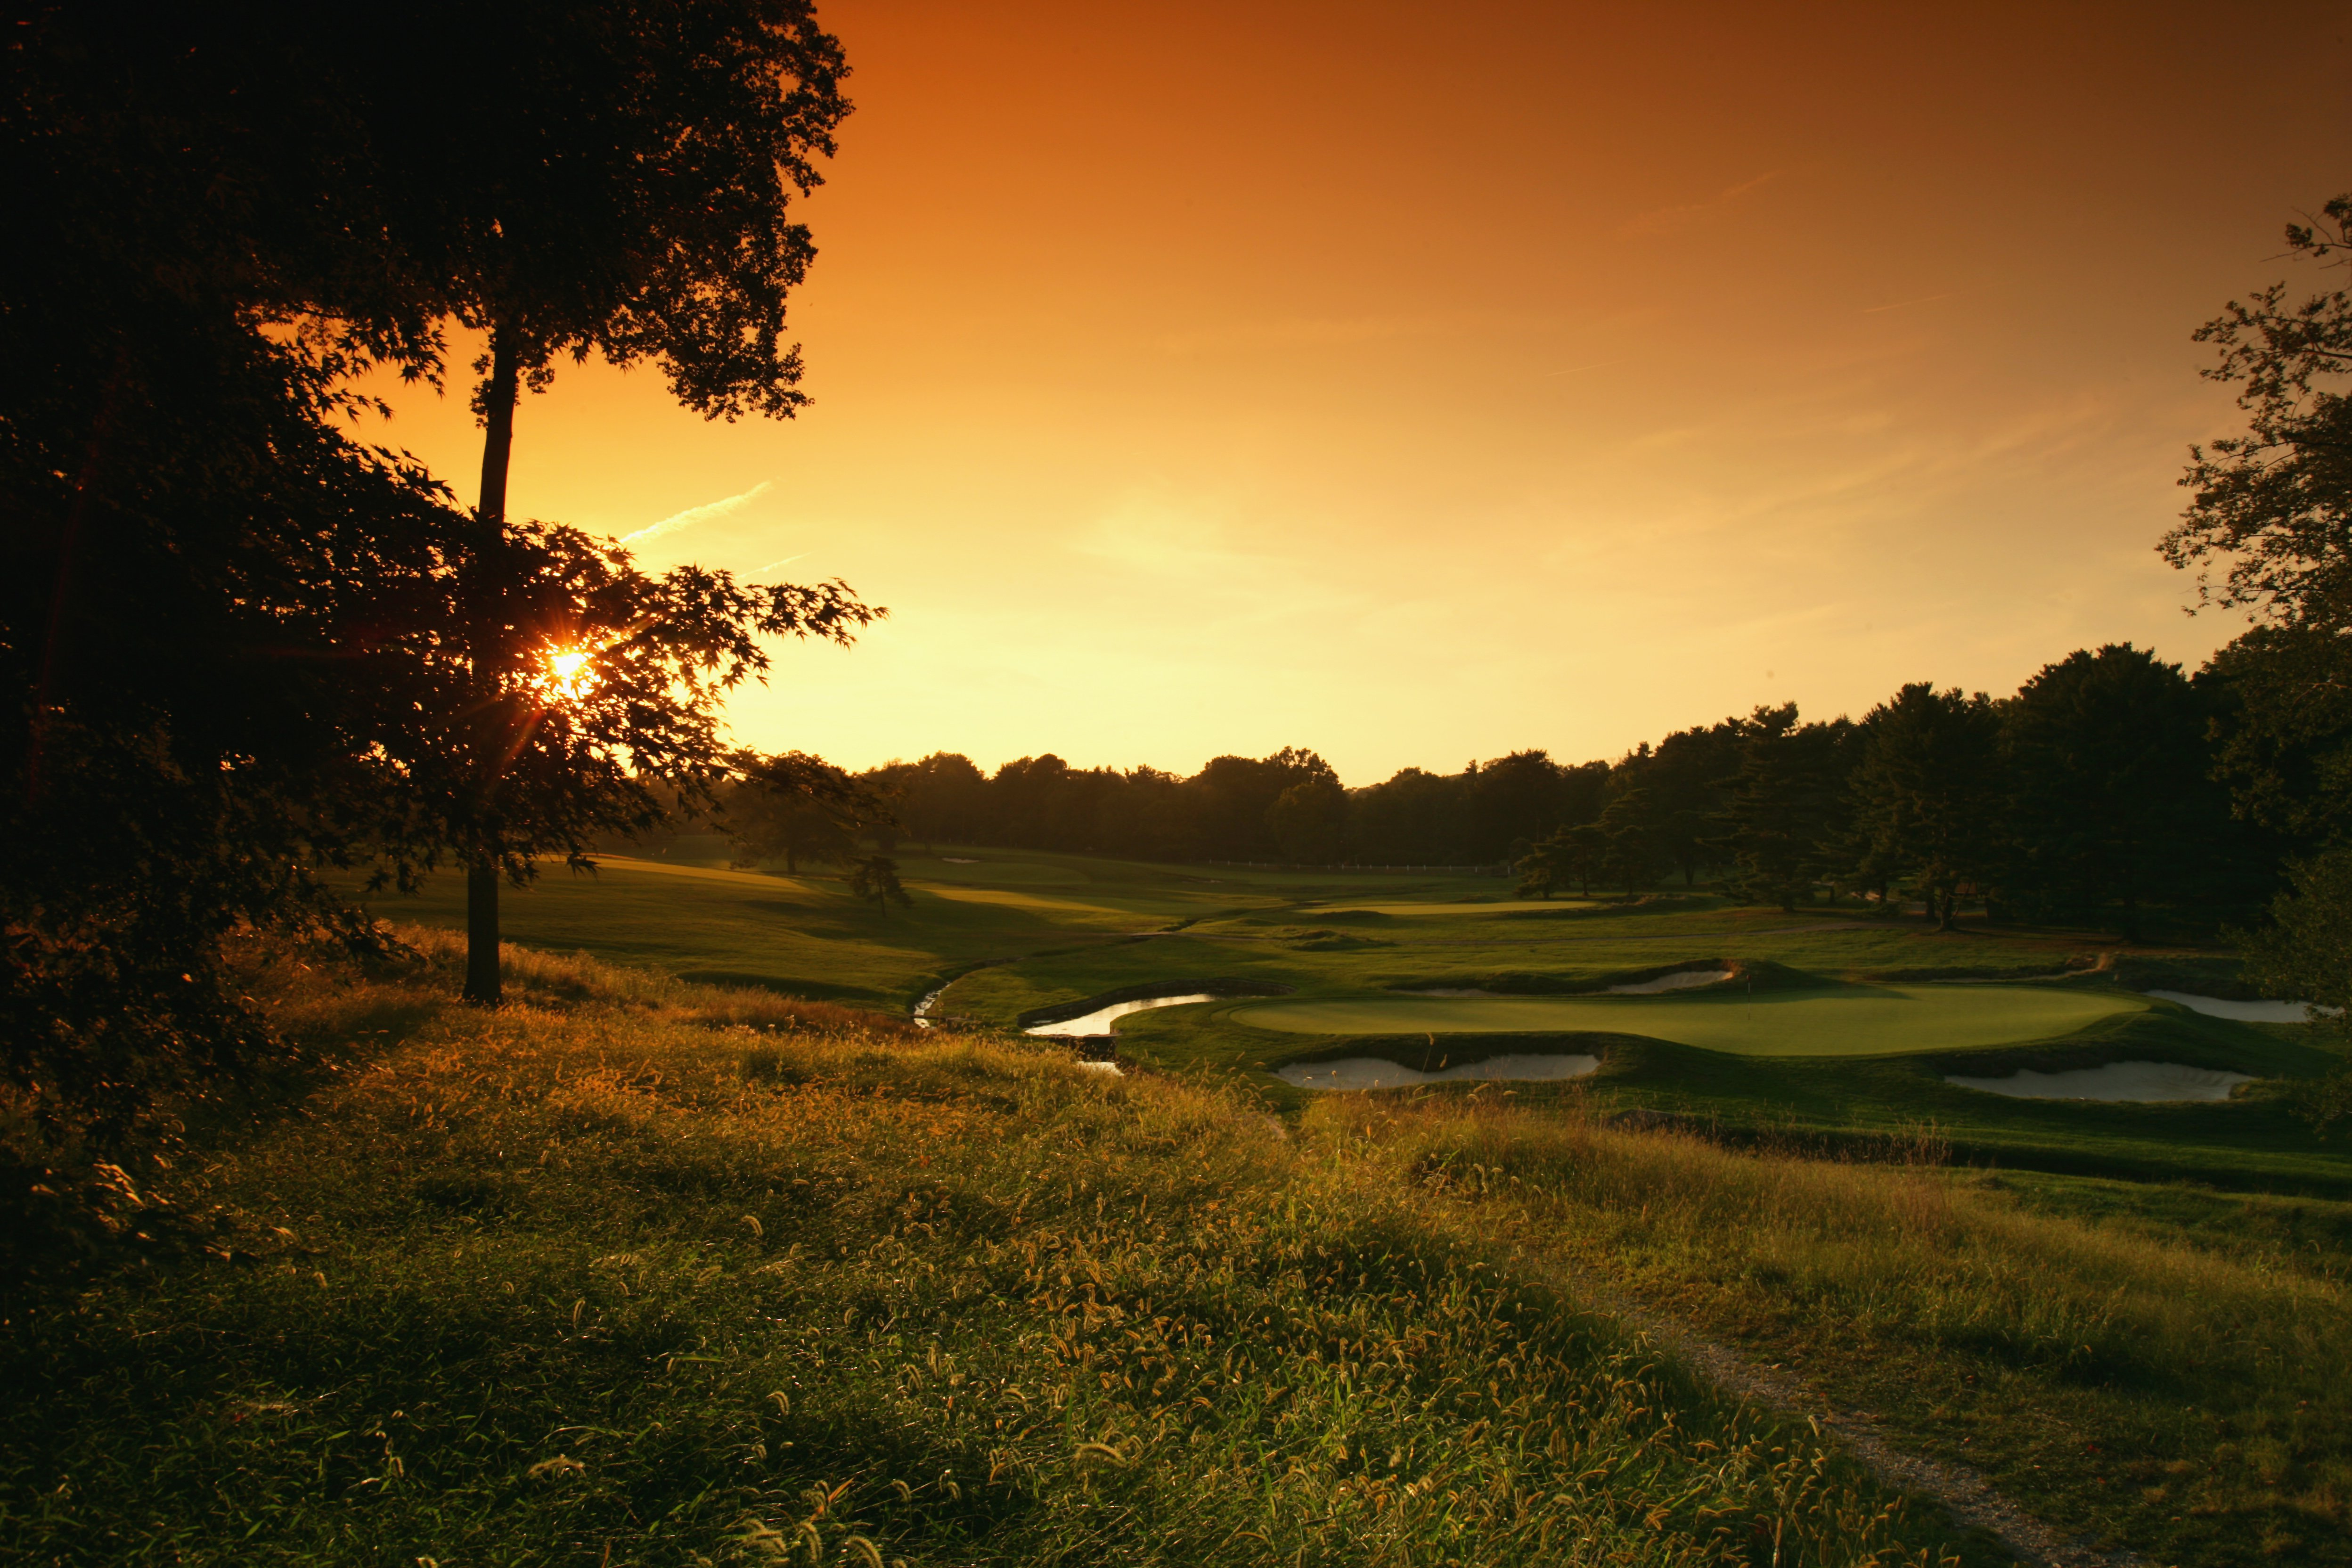 The Merion Golf Club hosted its fifth U.S. Open in 2013.